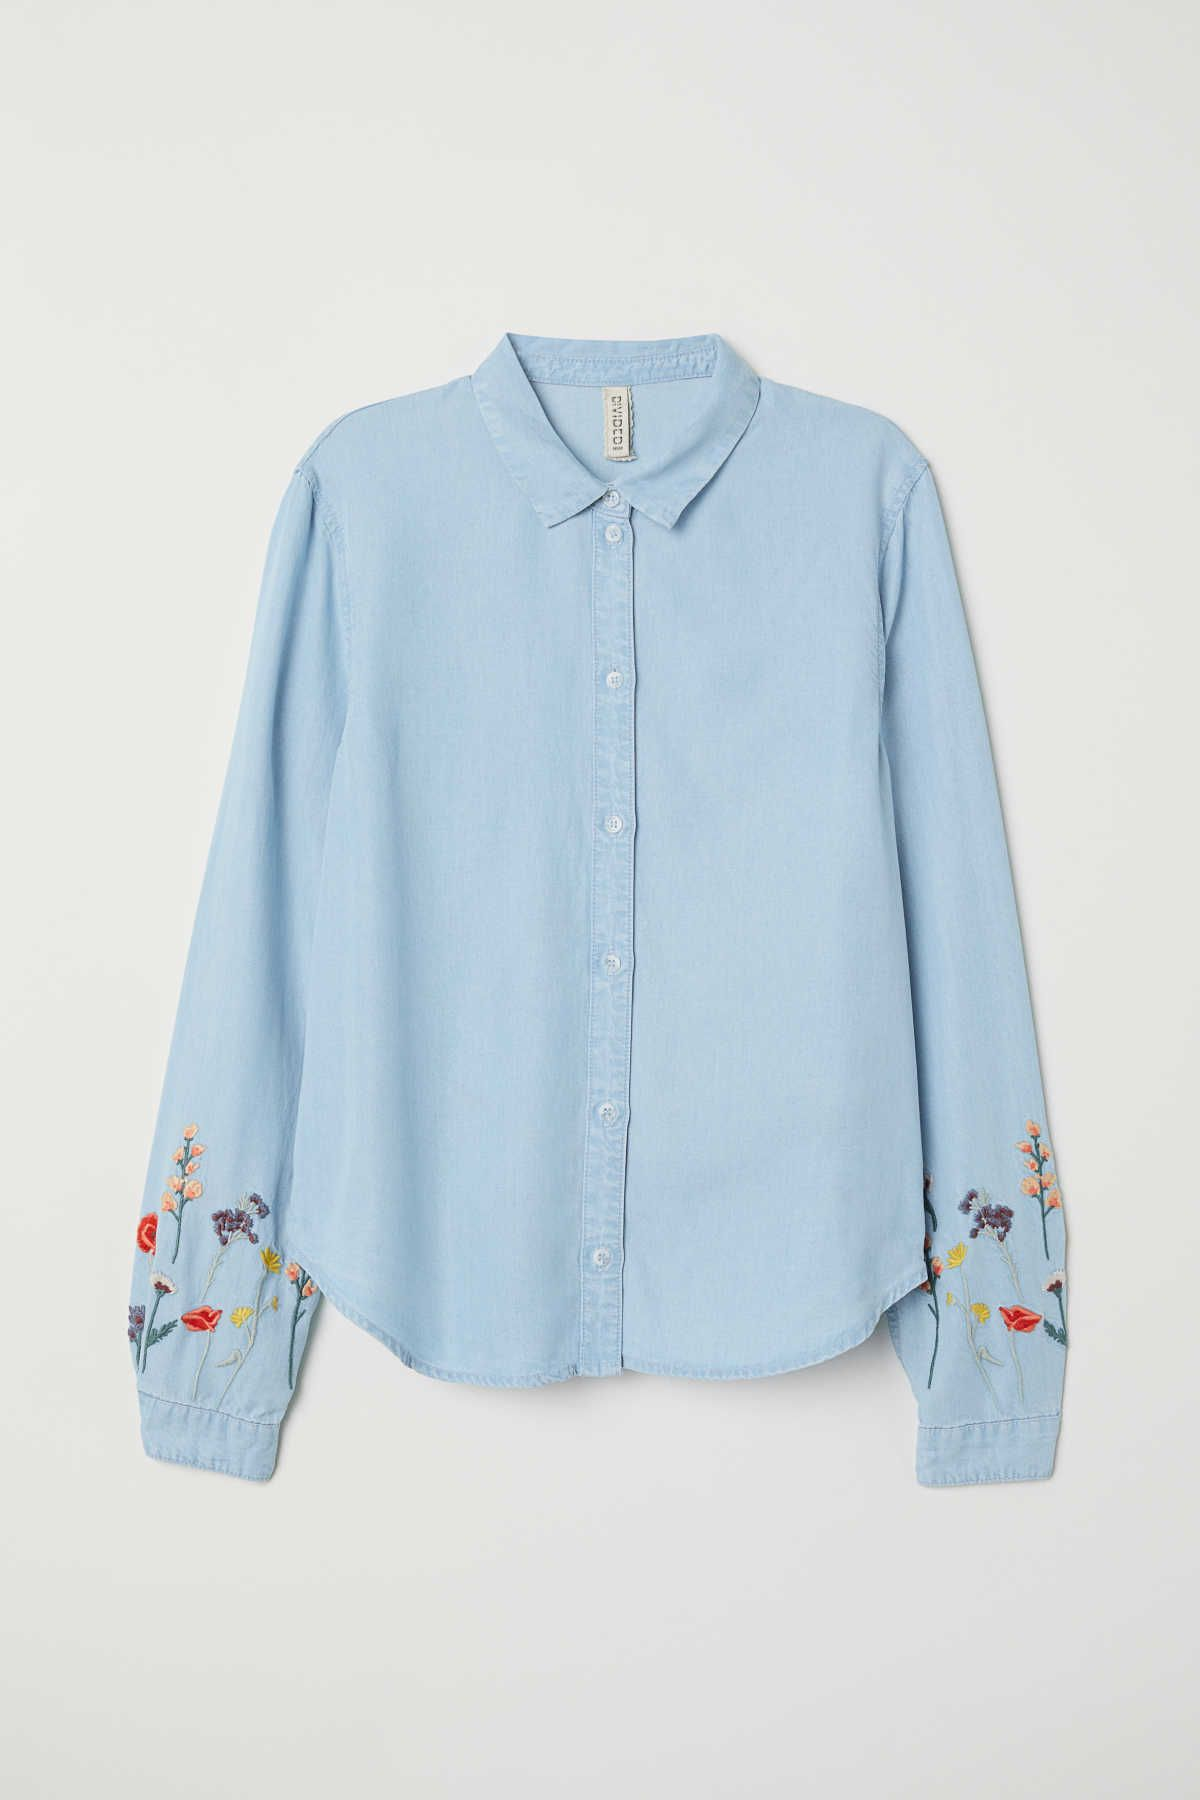 1c3c46bef21 Light denim blue/flowers. CONSCIOUS. Shirt in soft denim made from Tencel®  lyocell with embroidery. Collar, buttons at front, and long sleeves with  buttons